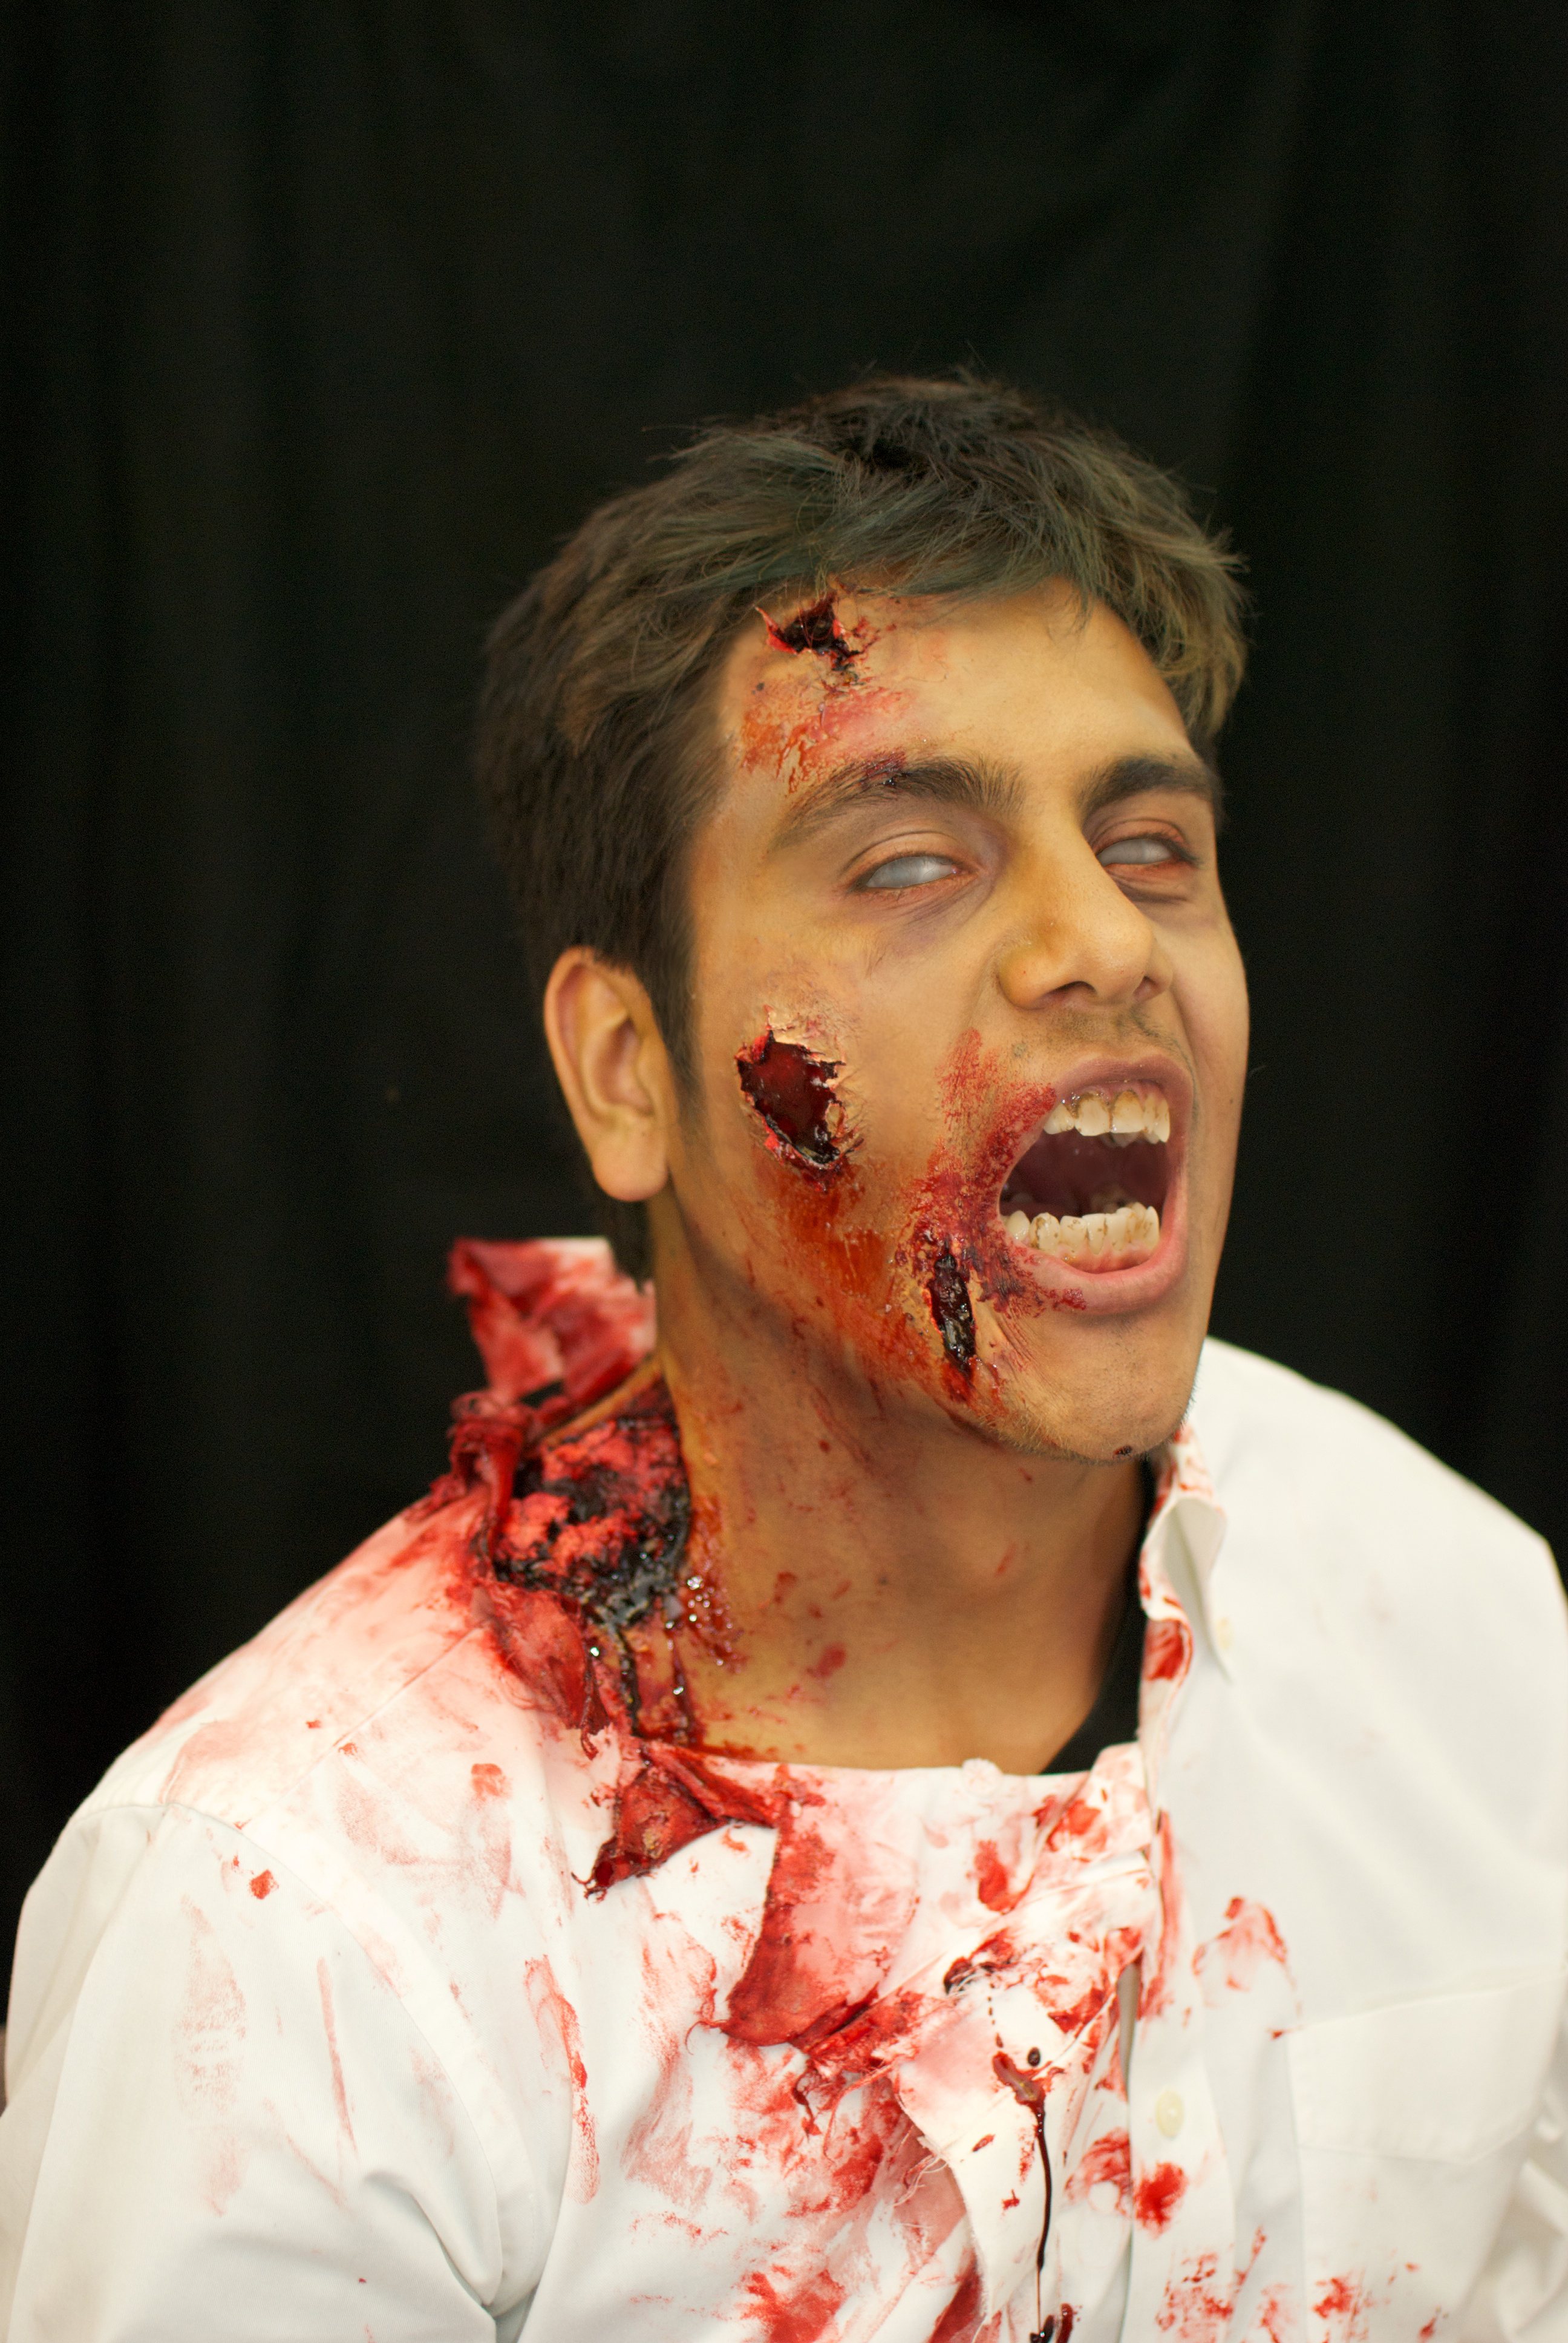 Picture of Zombie Makeup